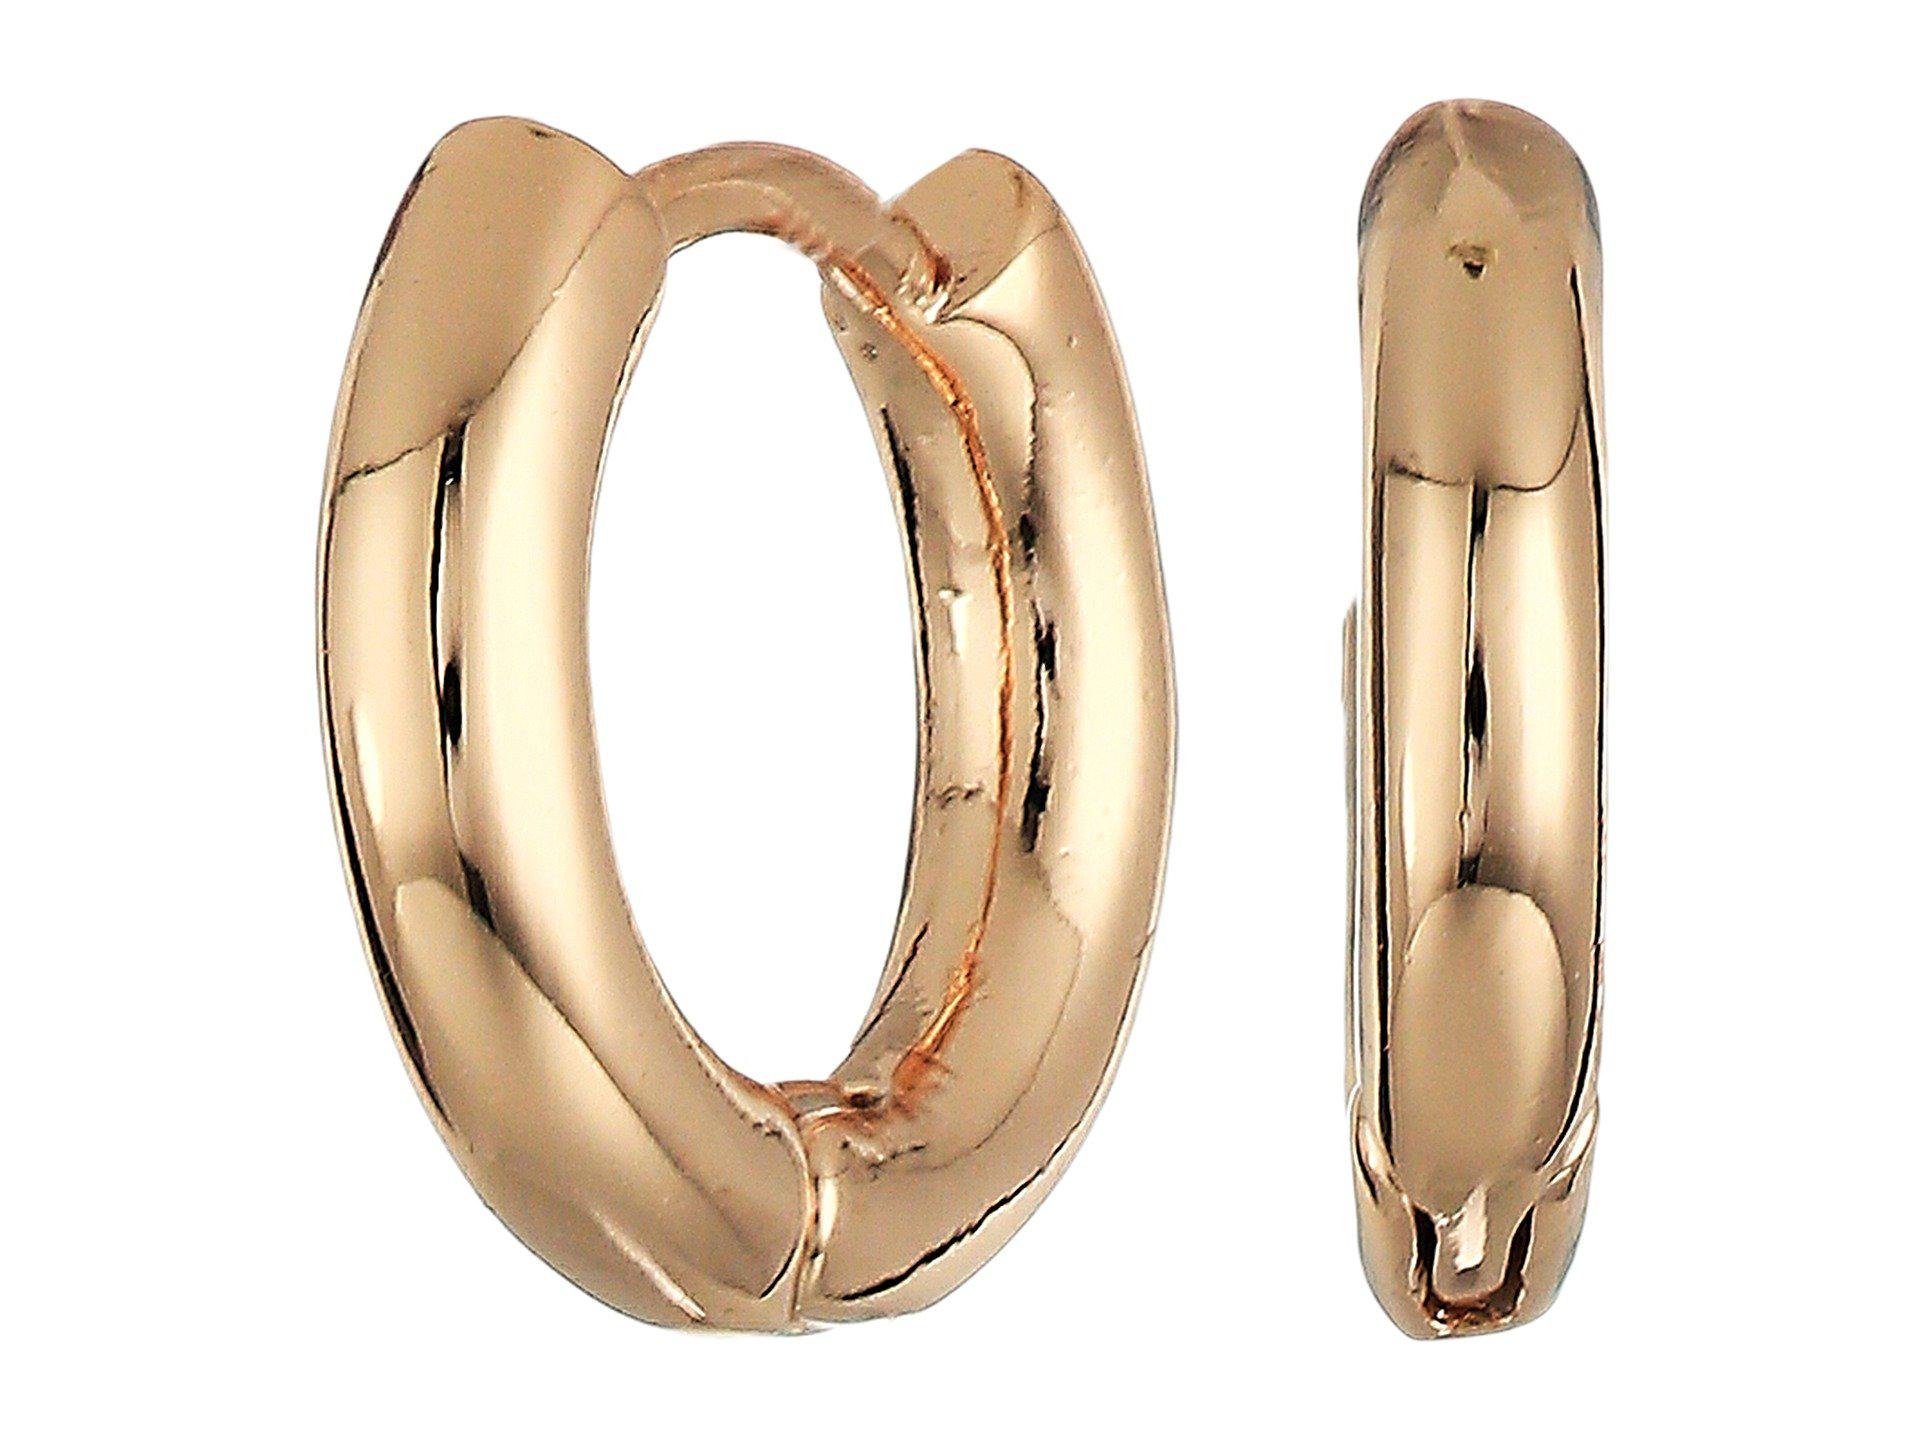 French Connection Huggie Hoop Earrings qaYriI3a